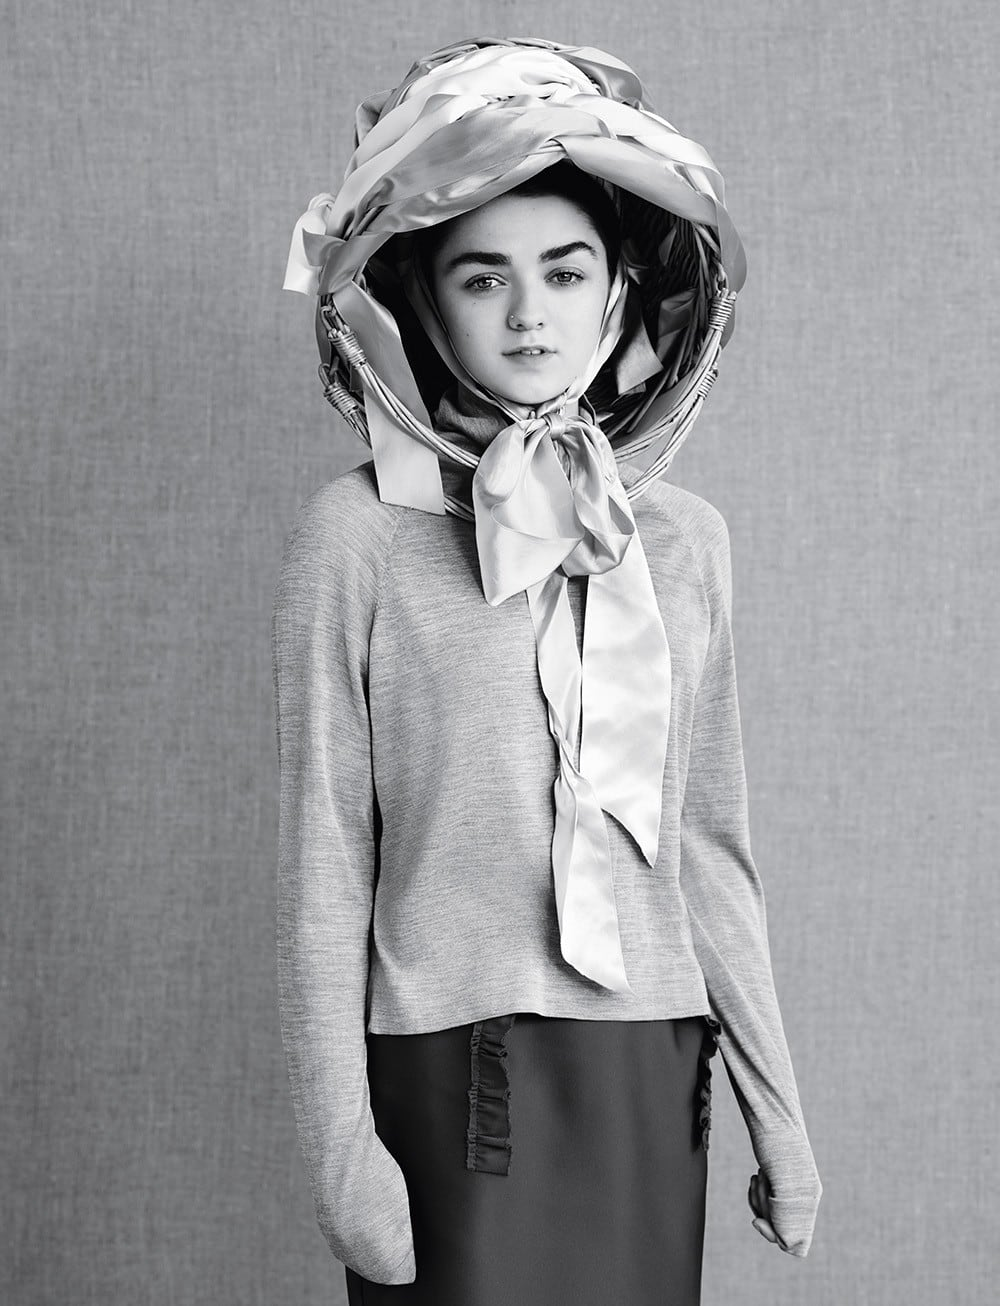 Maisie-Williams-Dazed-Confused-Magazine-2015-6